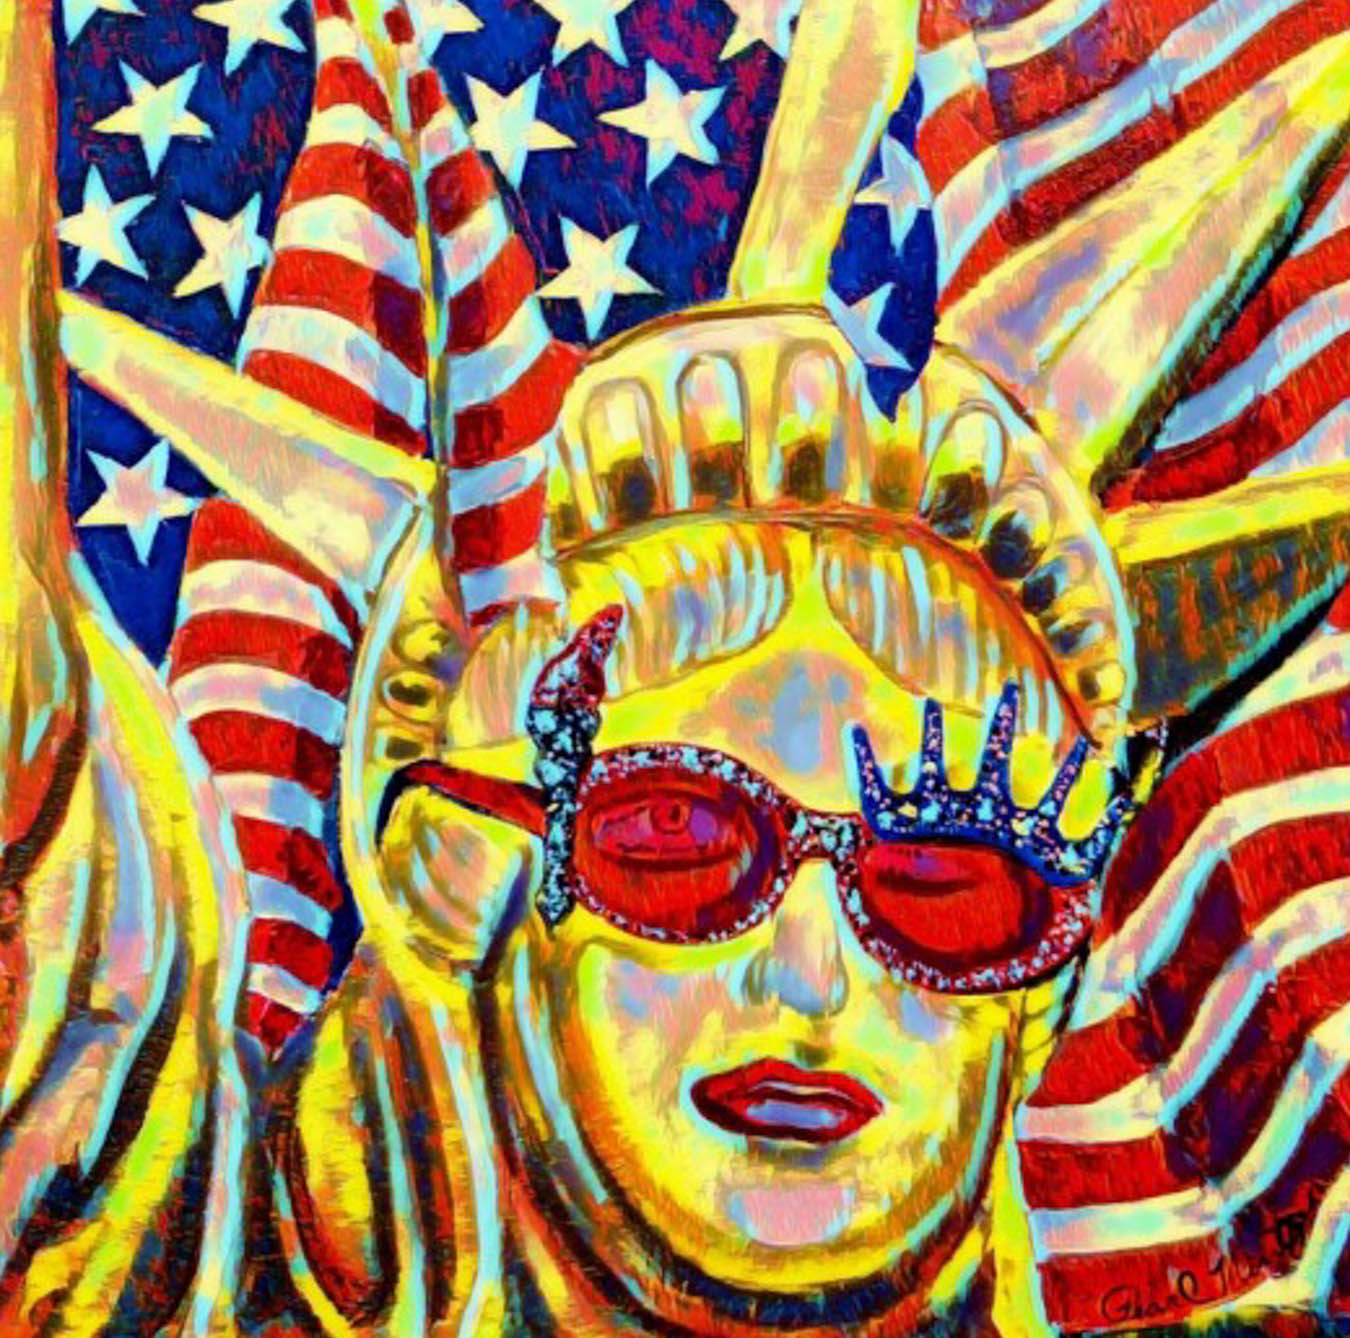 Multicolor digital image of the Statue of Liberty in yellow wearing sun glasses and lipstick with an American flag in the background.